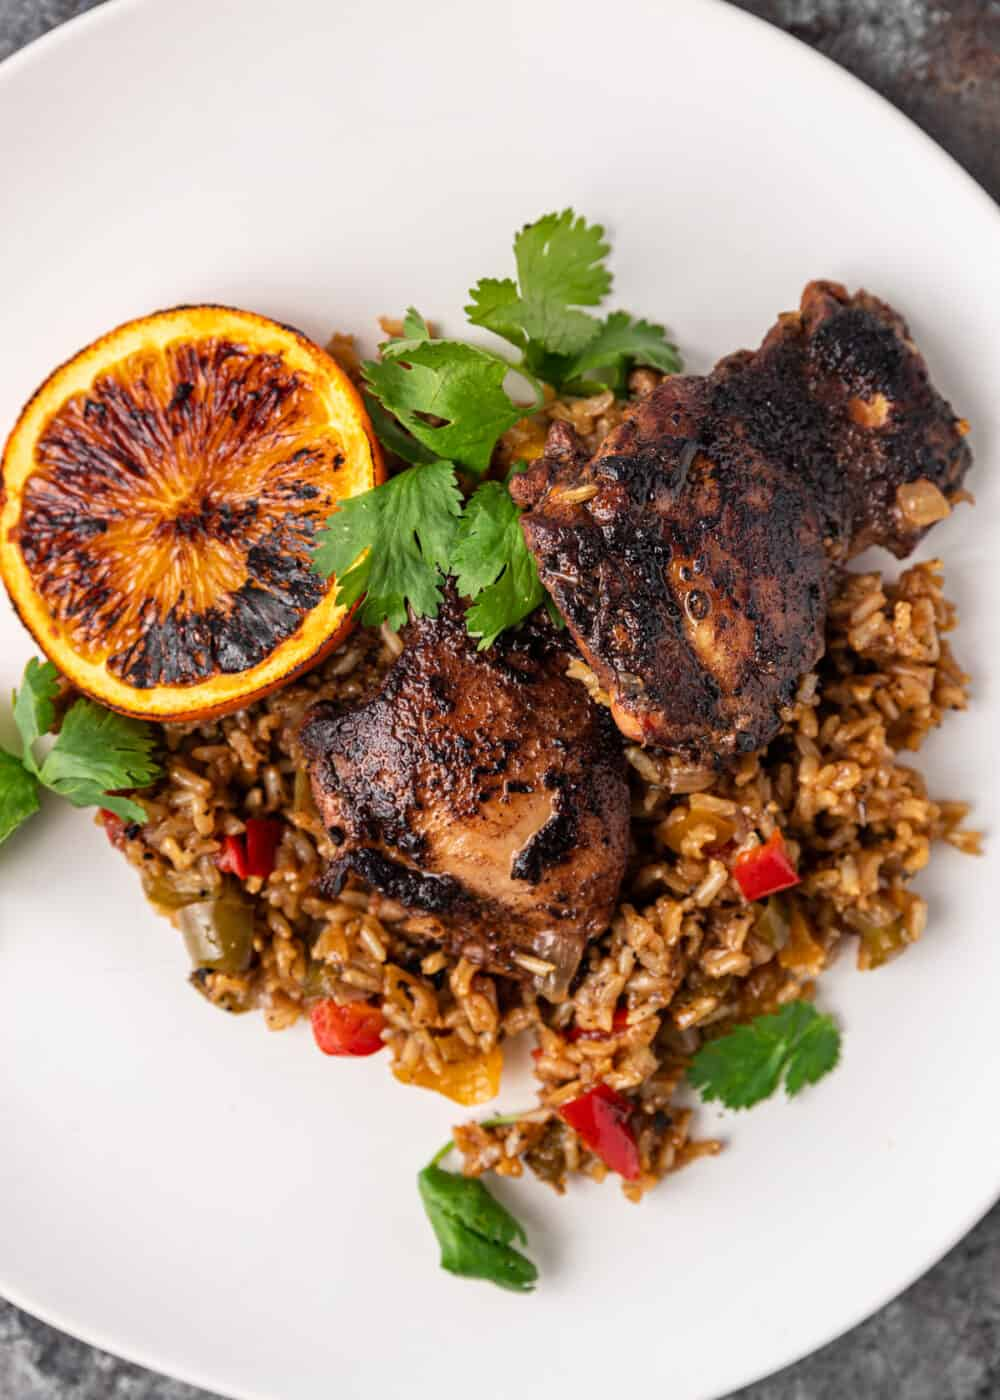 overhead image: Caribbean chicken breasts plated on bed of brown rice